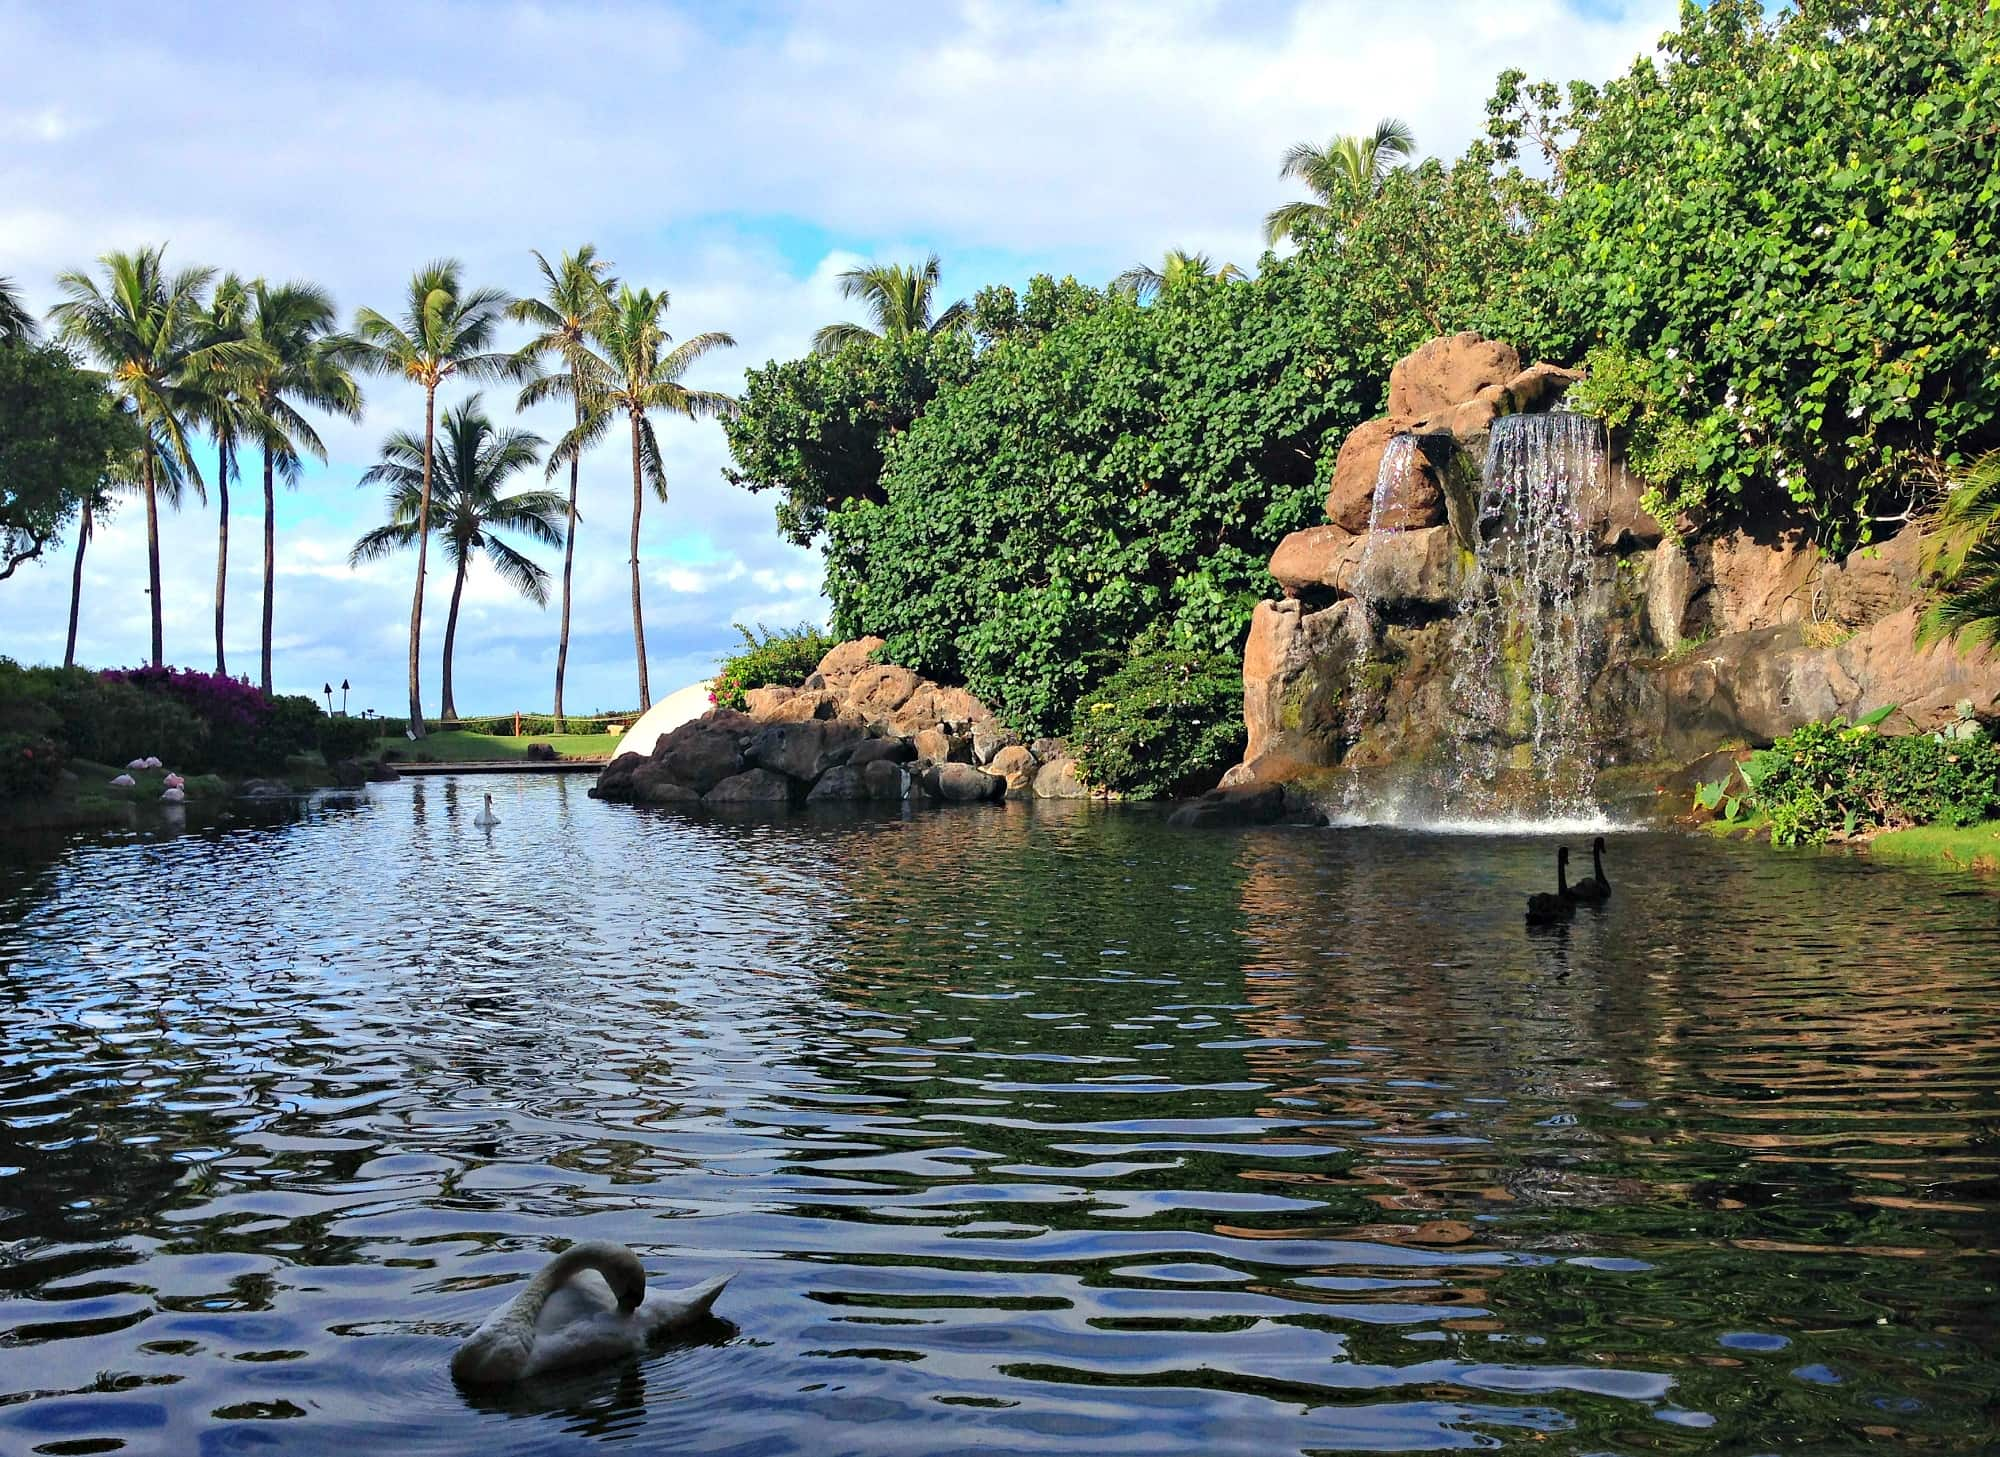 Swan Court at Hyatt Regency Maui with kids